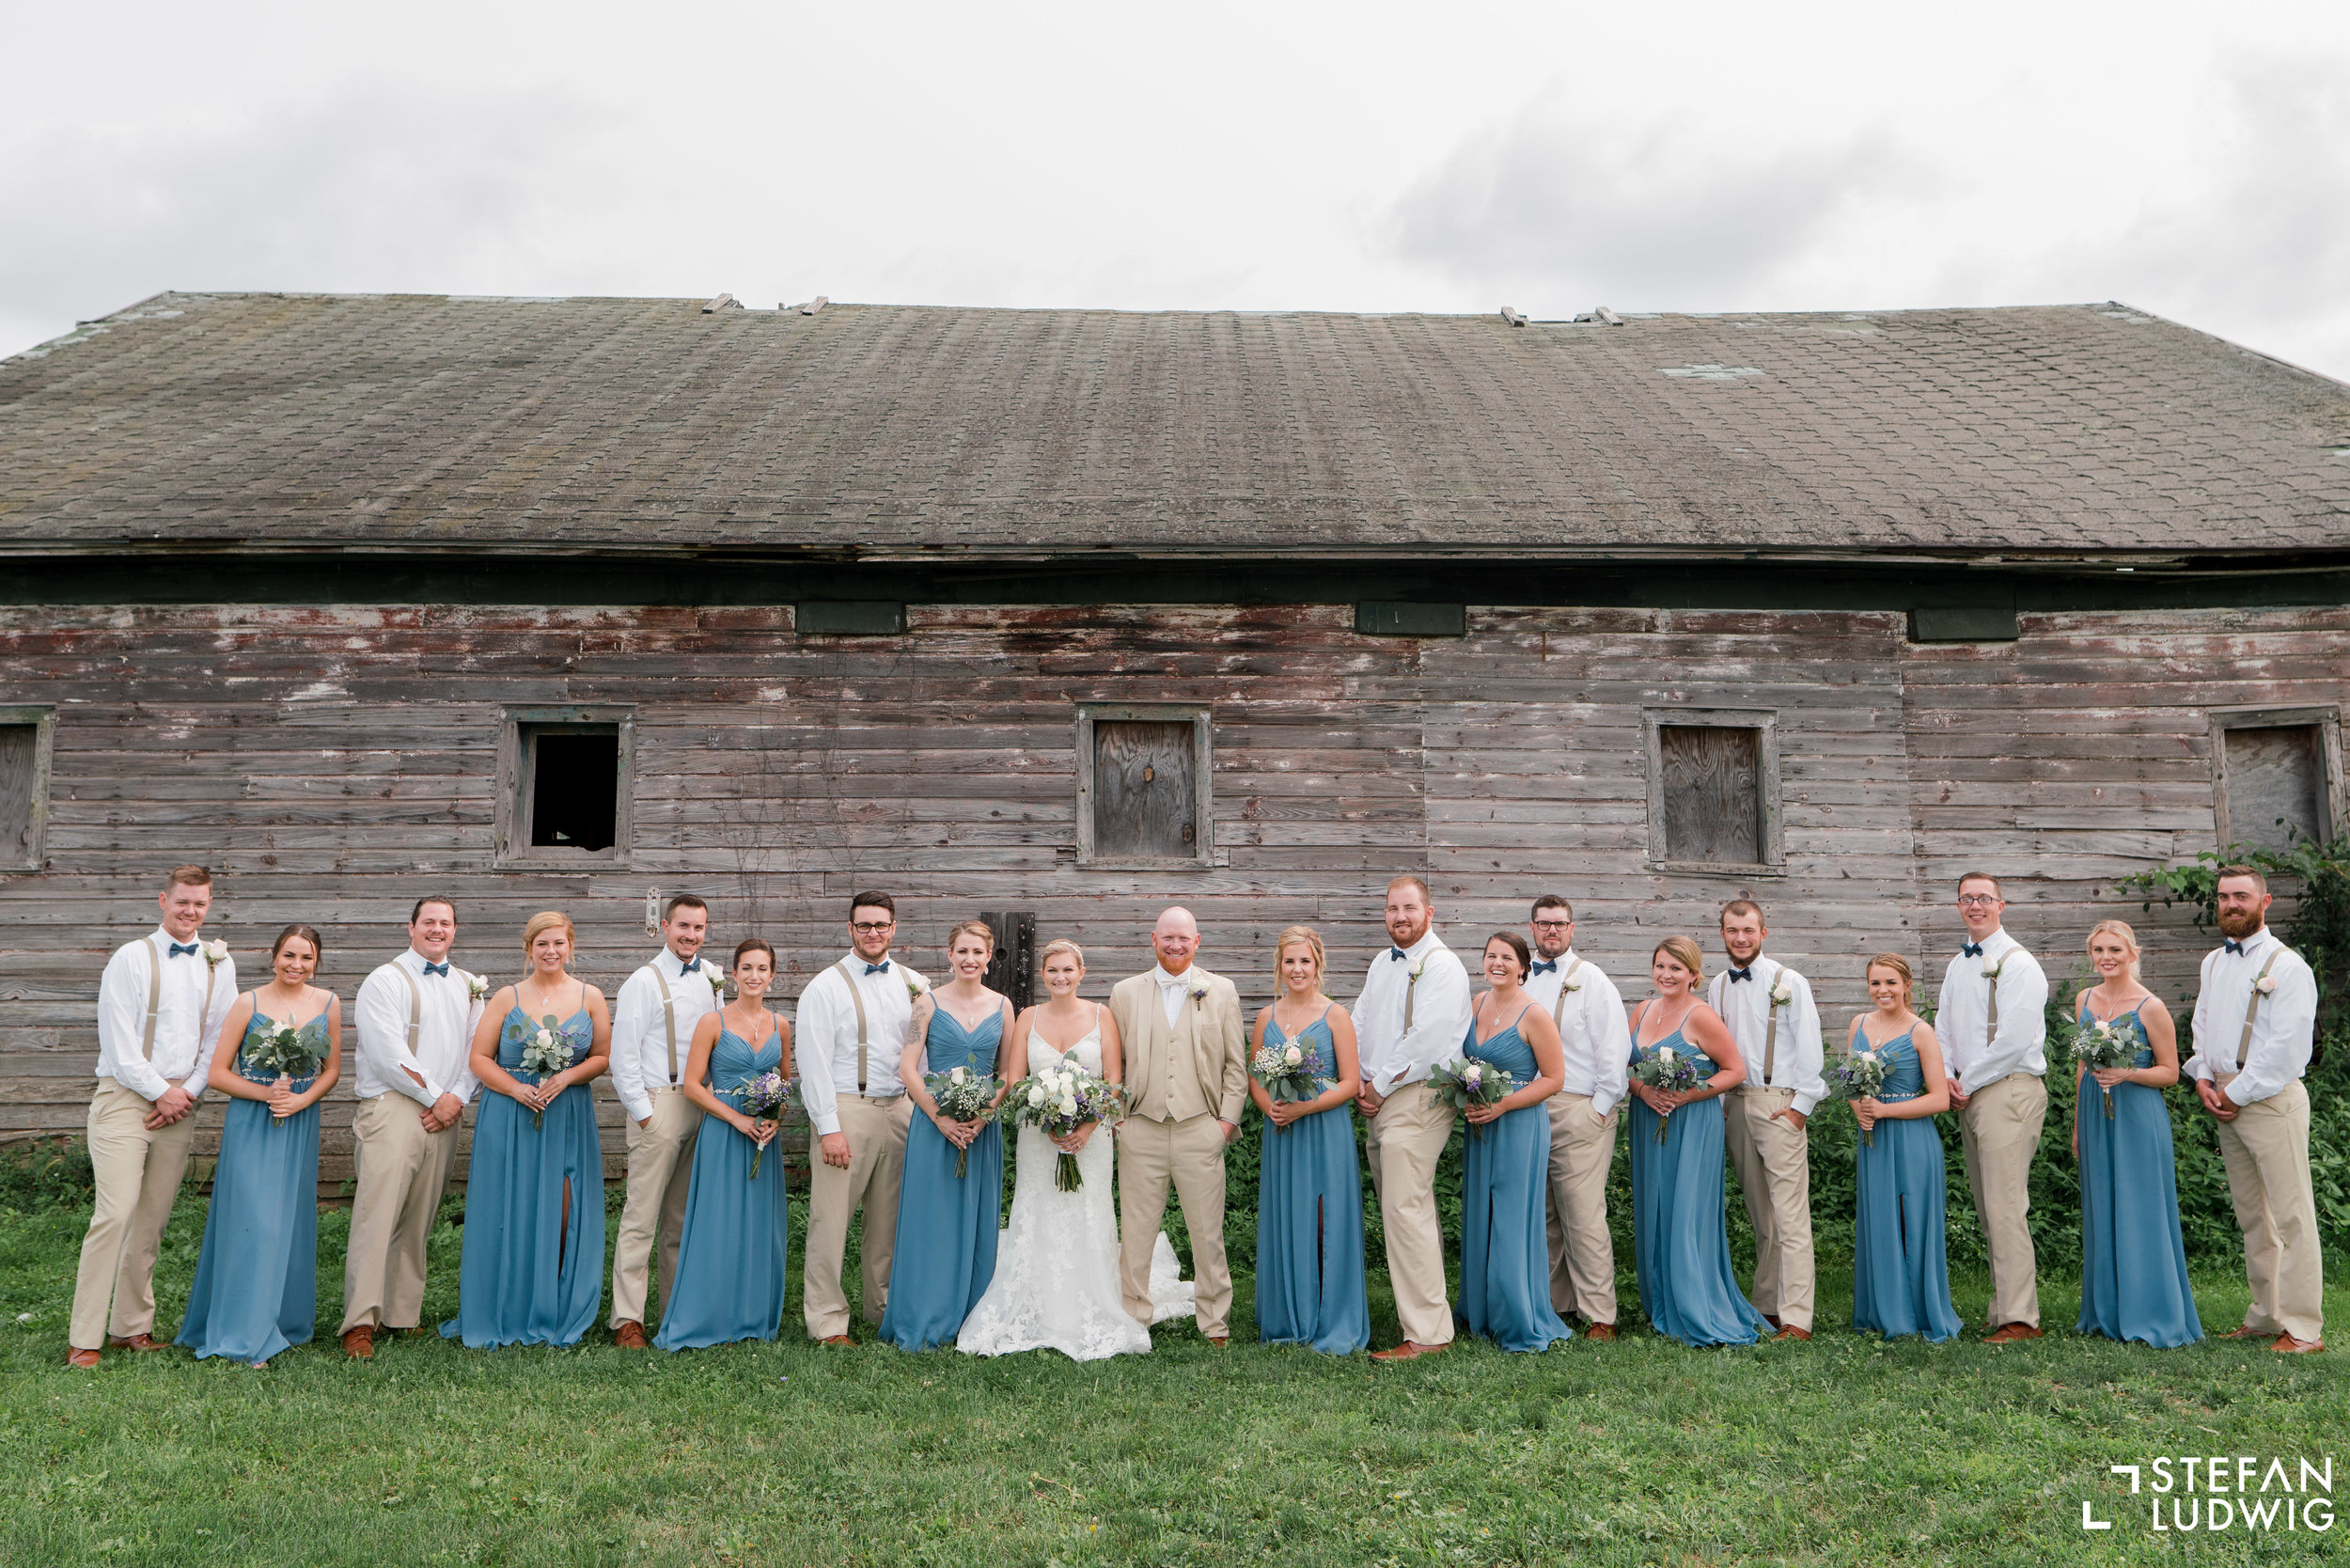 Blog Chelsea and Beau Wedding Photography at Gallagher Barn in Gasport NY by Stefan Ludwig Photography -31.jpg